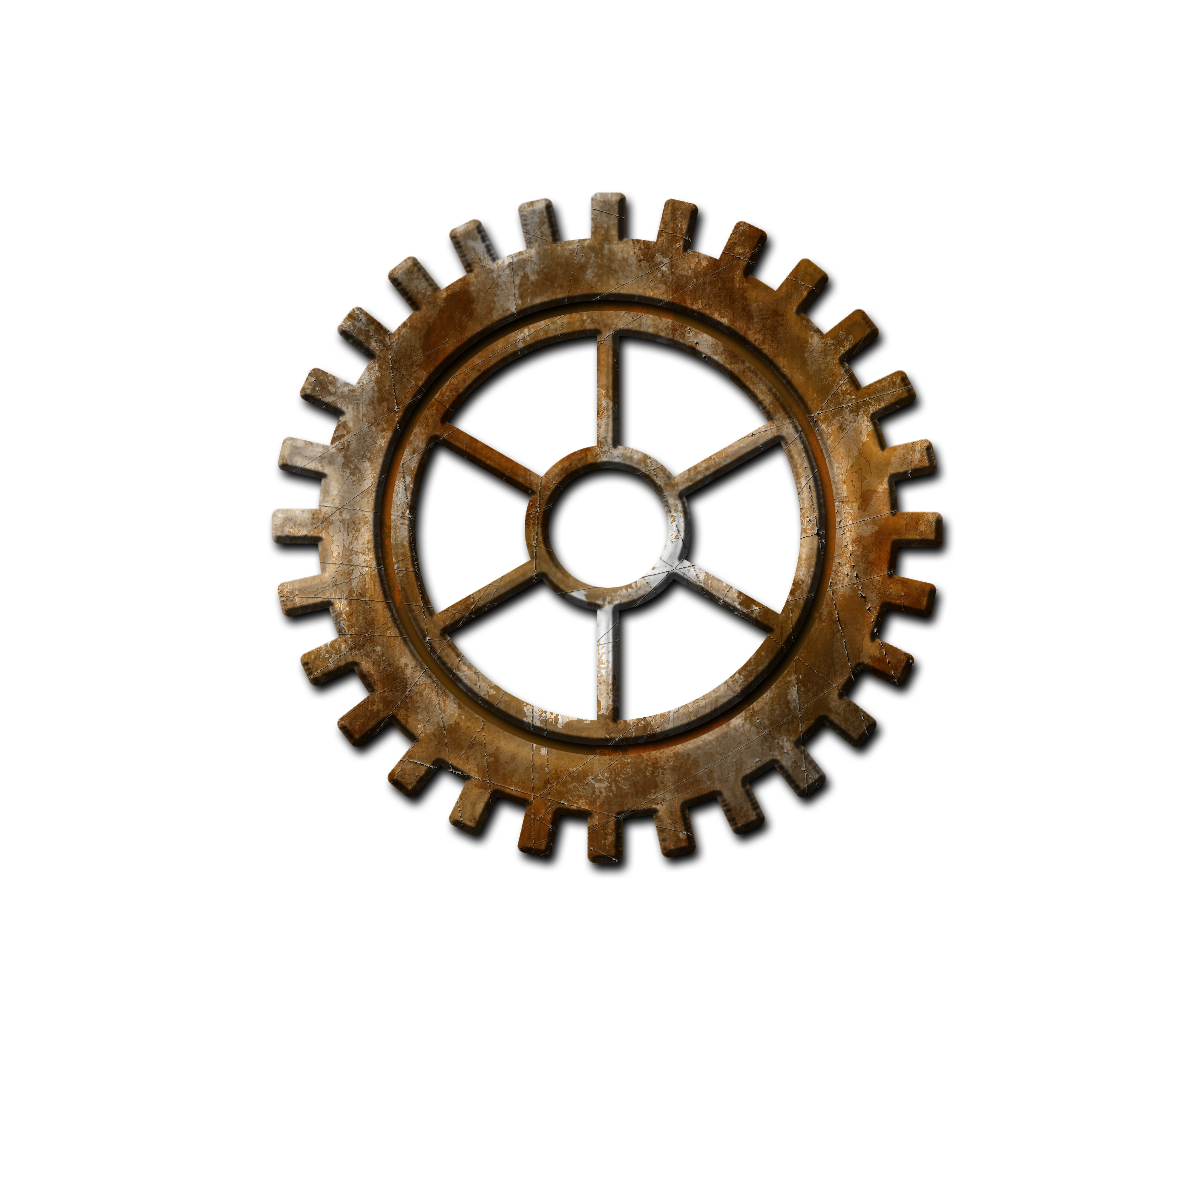 Gear clipart pulley gear. The sum of all